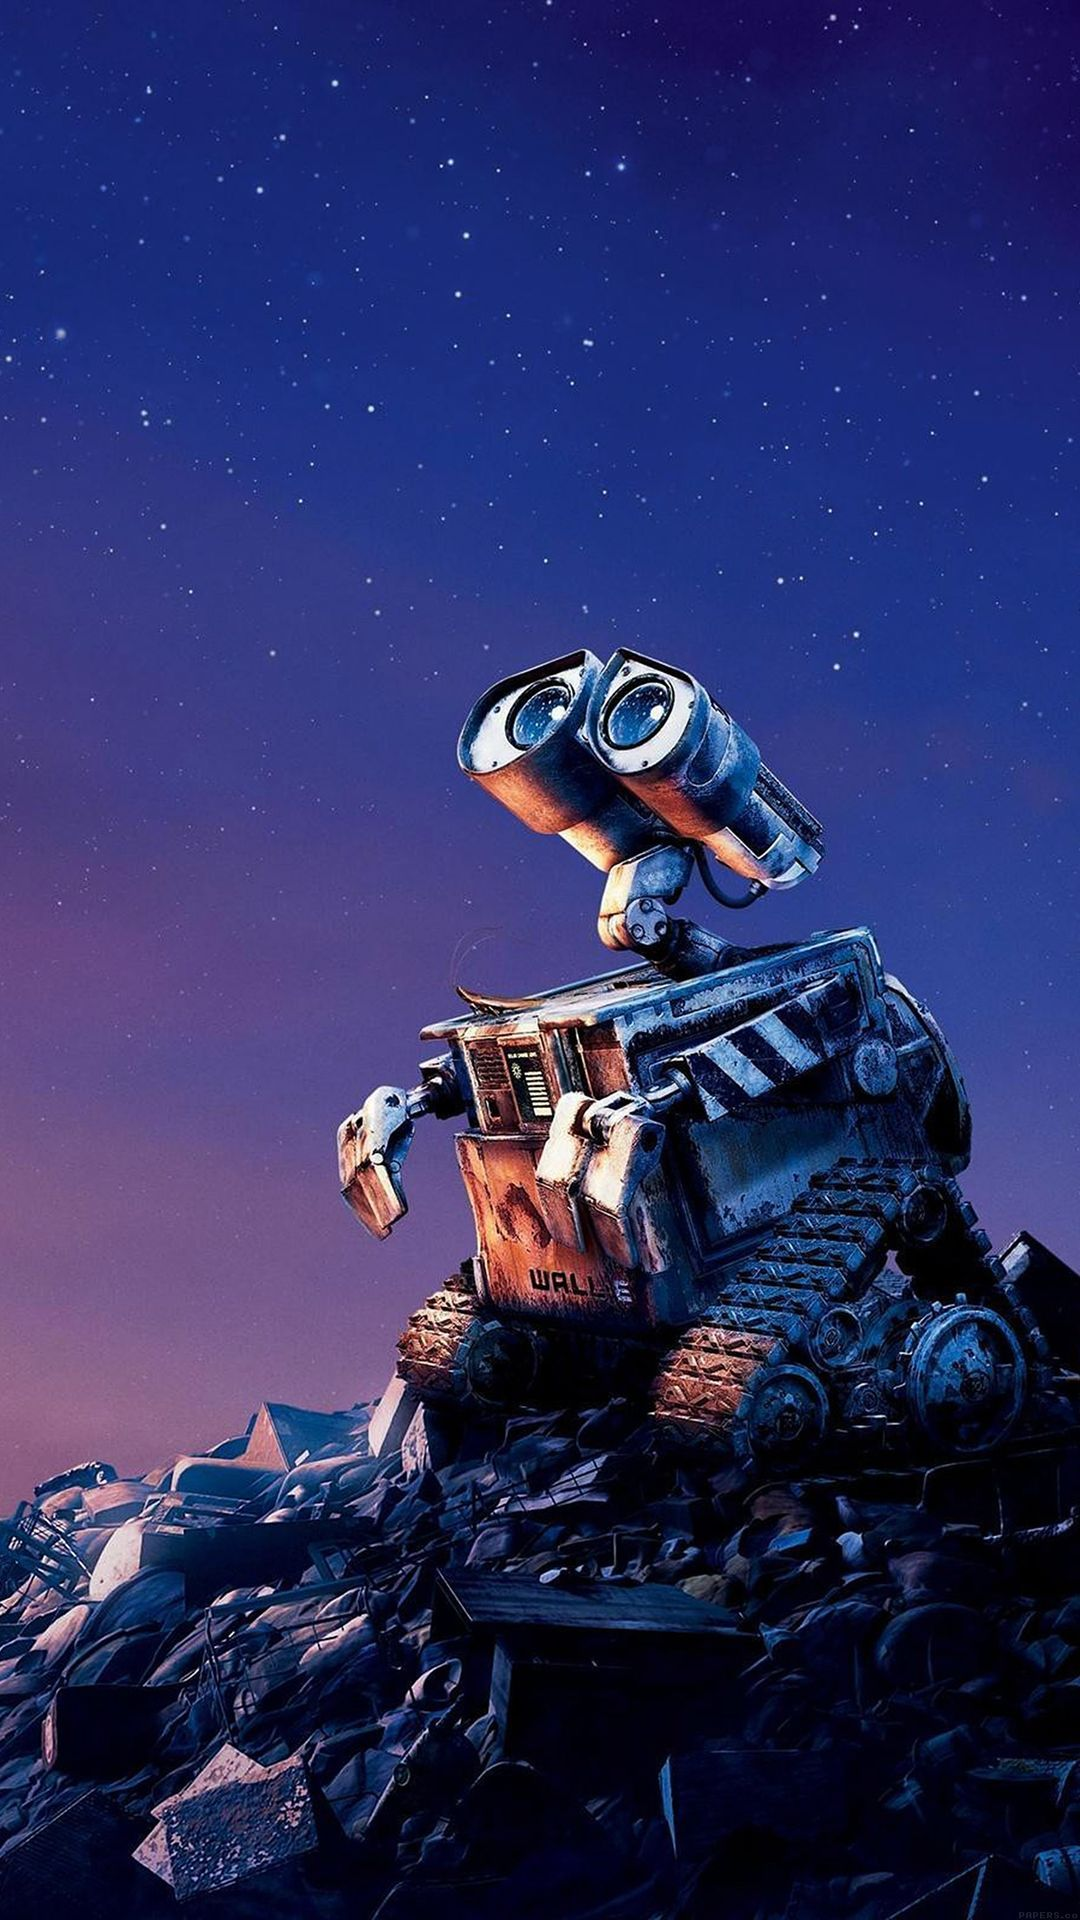 Tap image for more iPhone Disney wallpaper! Wall E Disney want go home - @mobile9   Wallpapers ...